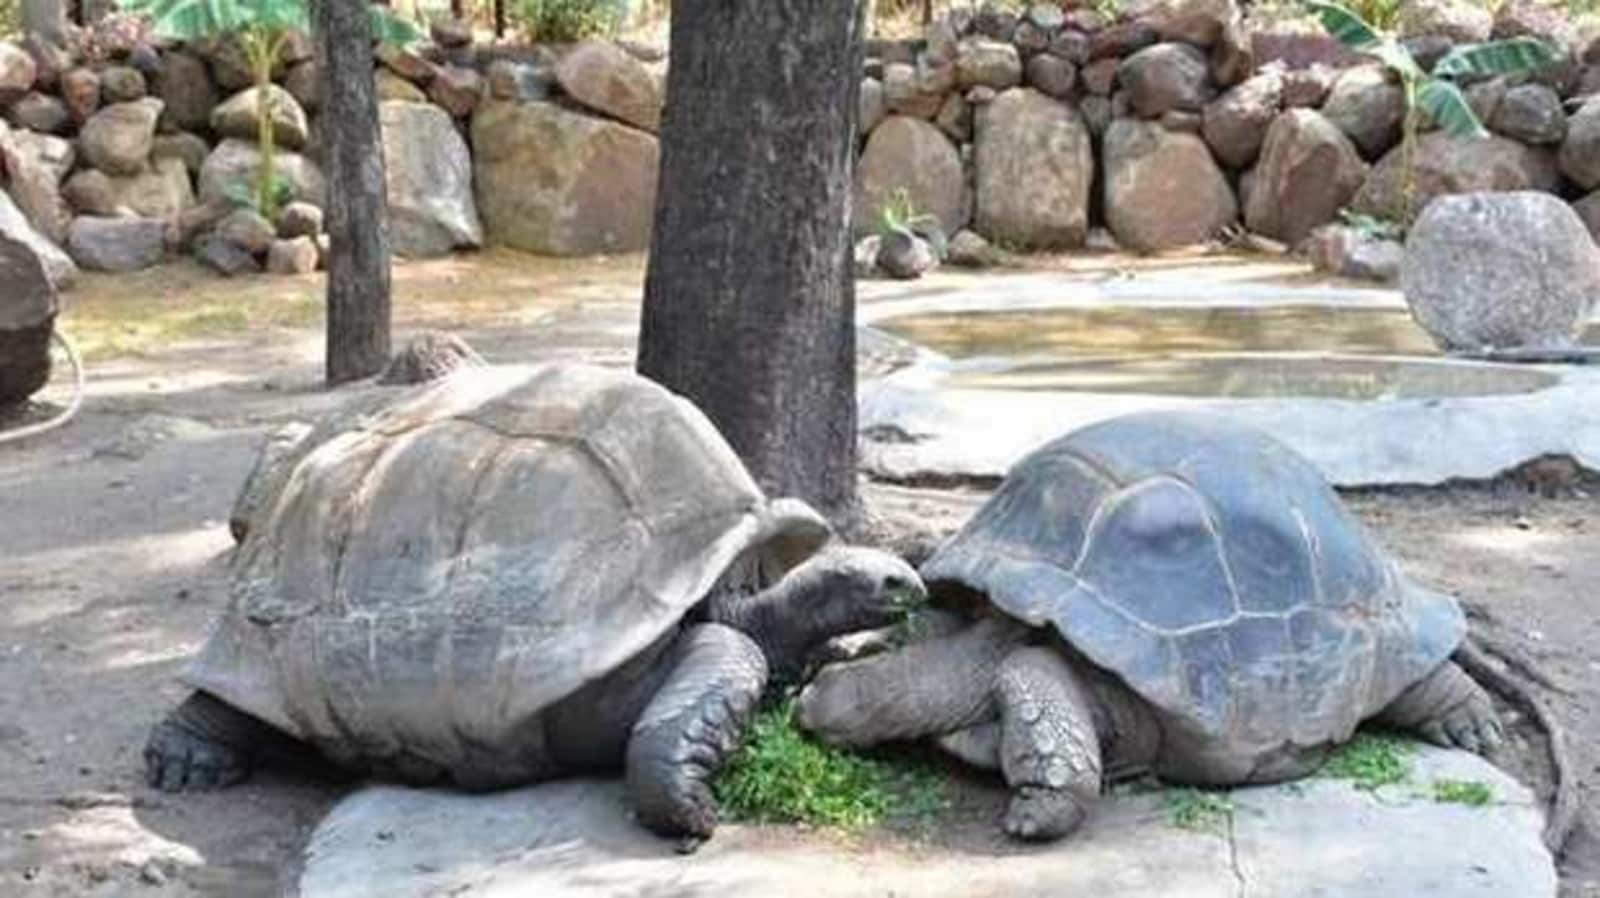 121-year-old tortoise adopted by couple from Nehru Zoological Park in Hyderabad